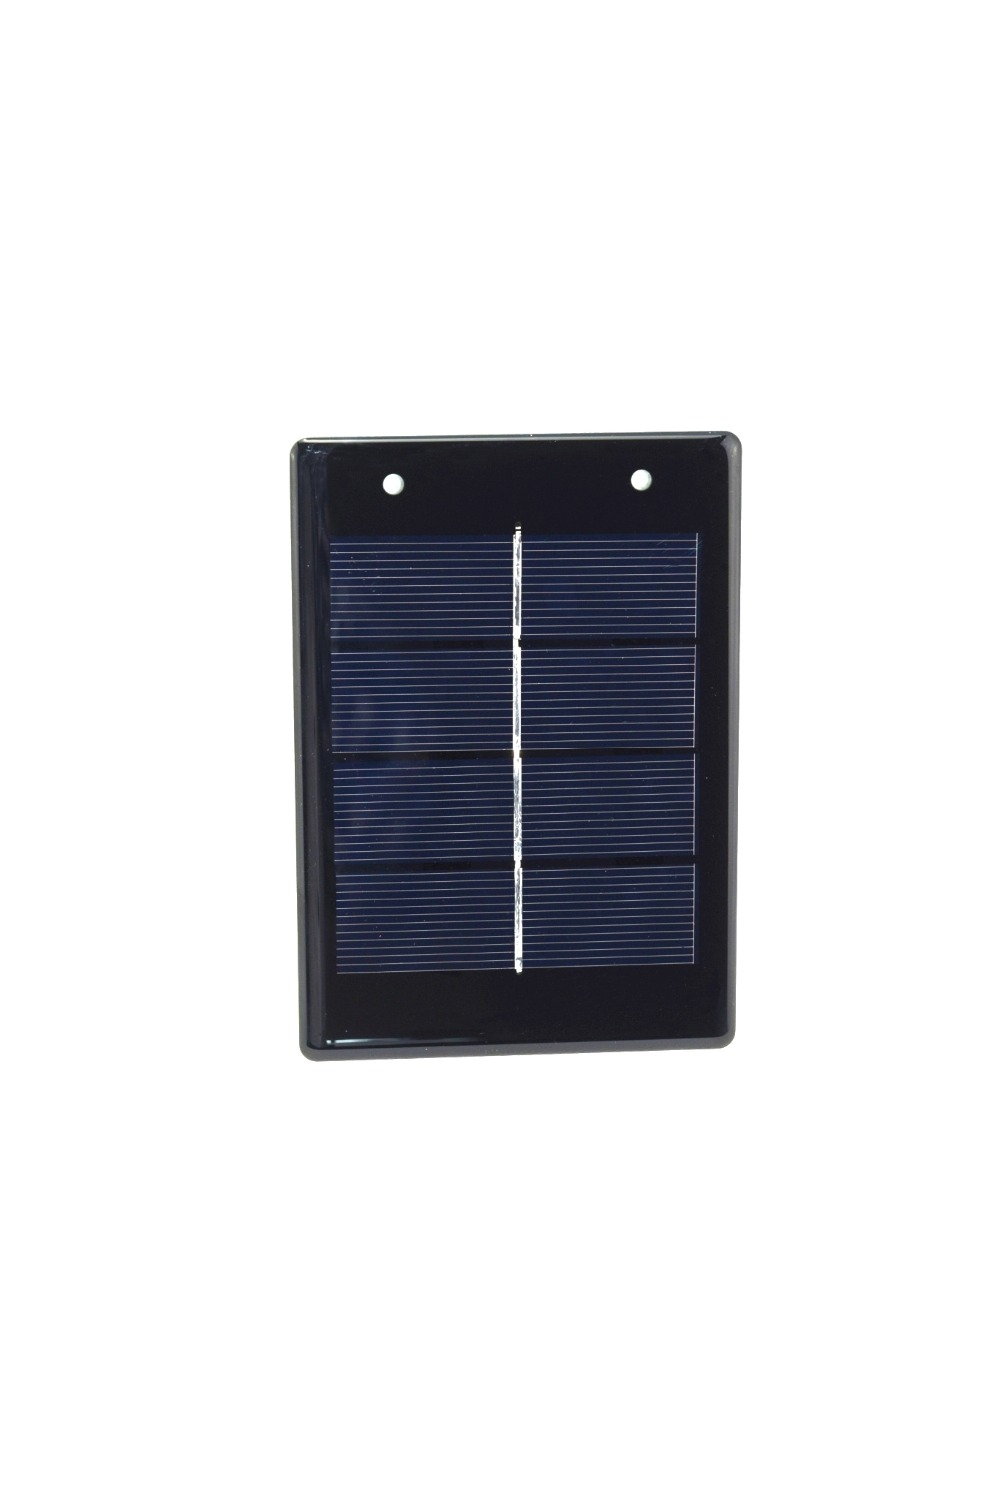 Solarparts 3pcs 2V 600mA Epoxy Resin Polycrystalline Solar Modules factory selling price solar cell panel system module kits di